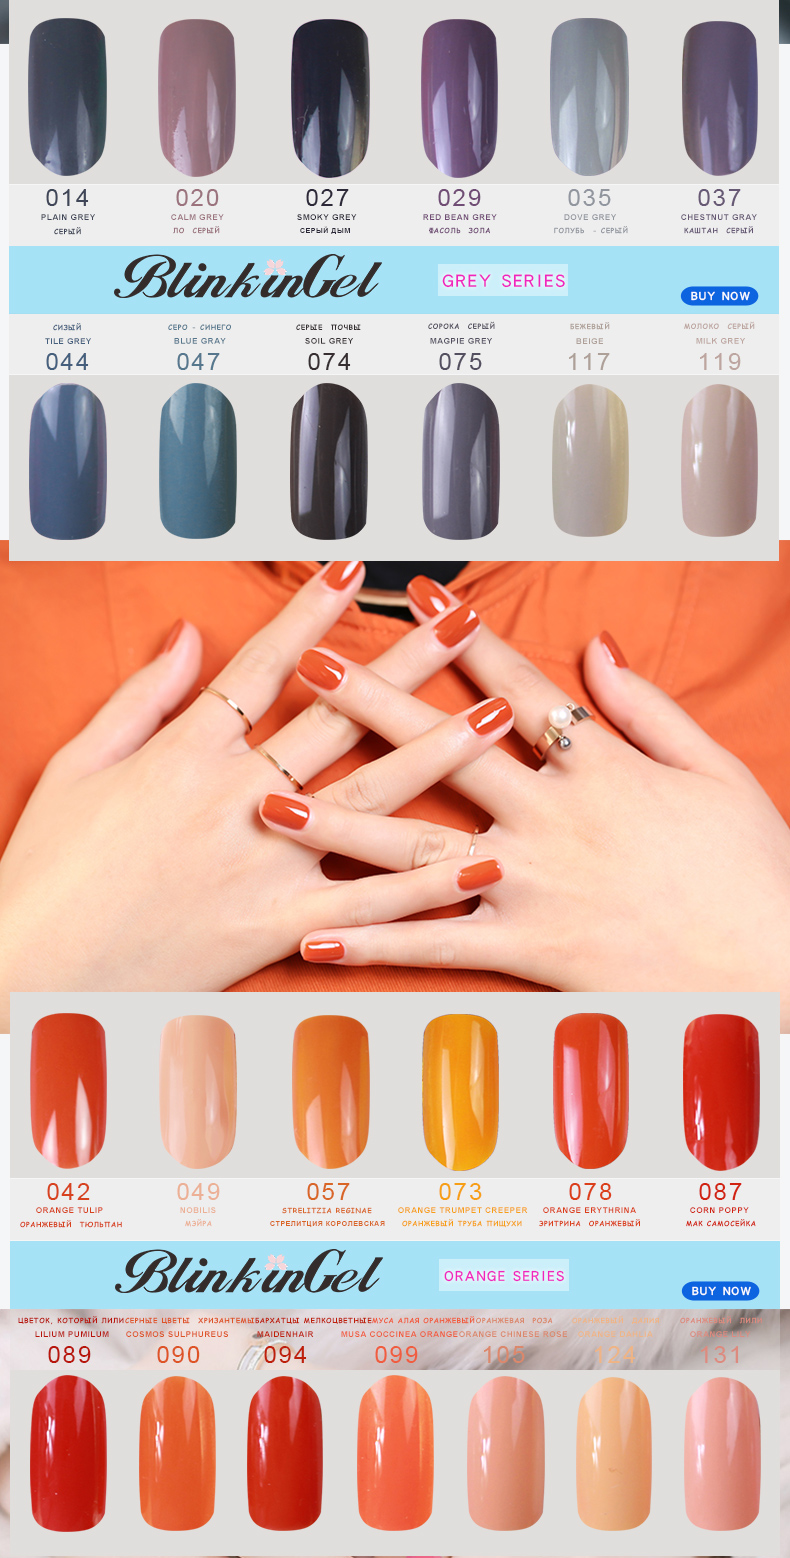 Blinkingel 1pcs Beige Uv Gel Nail Polish 15 Ml Paint Nude Dove 15ml 13